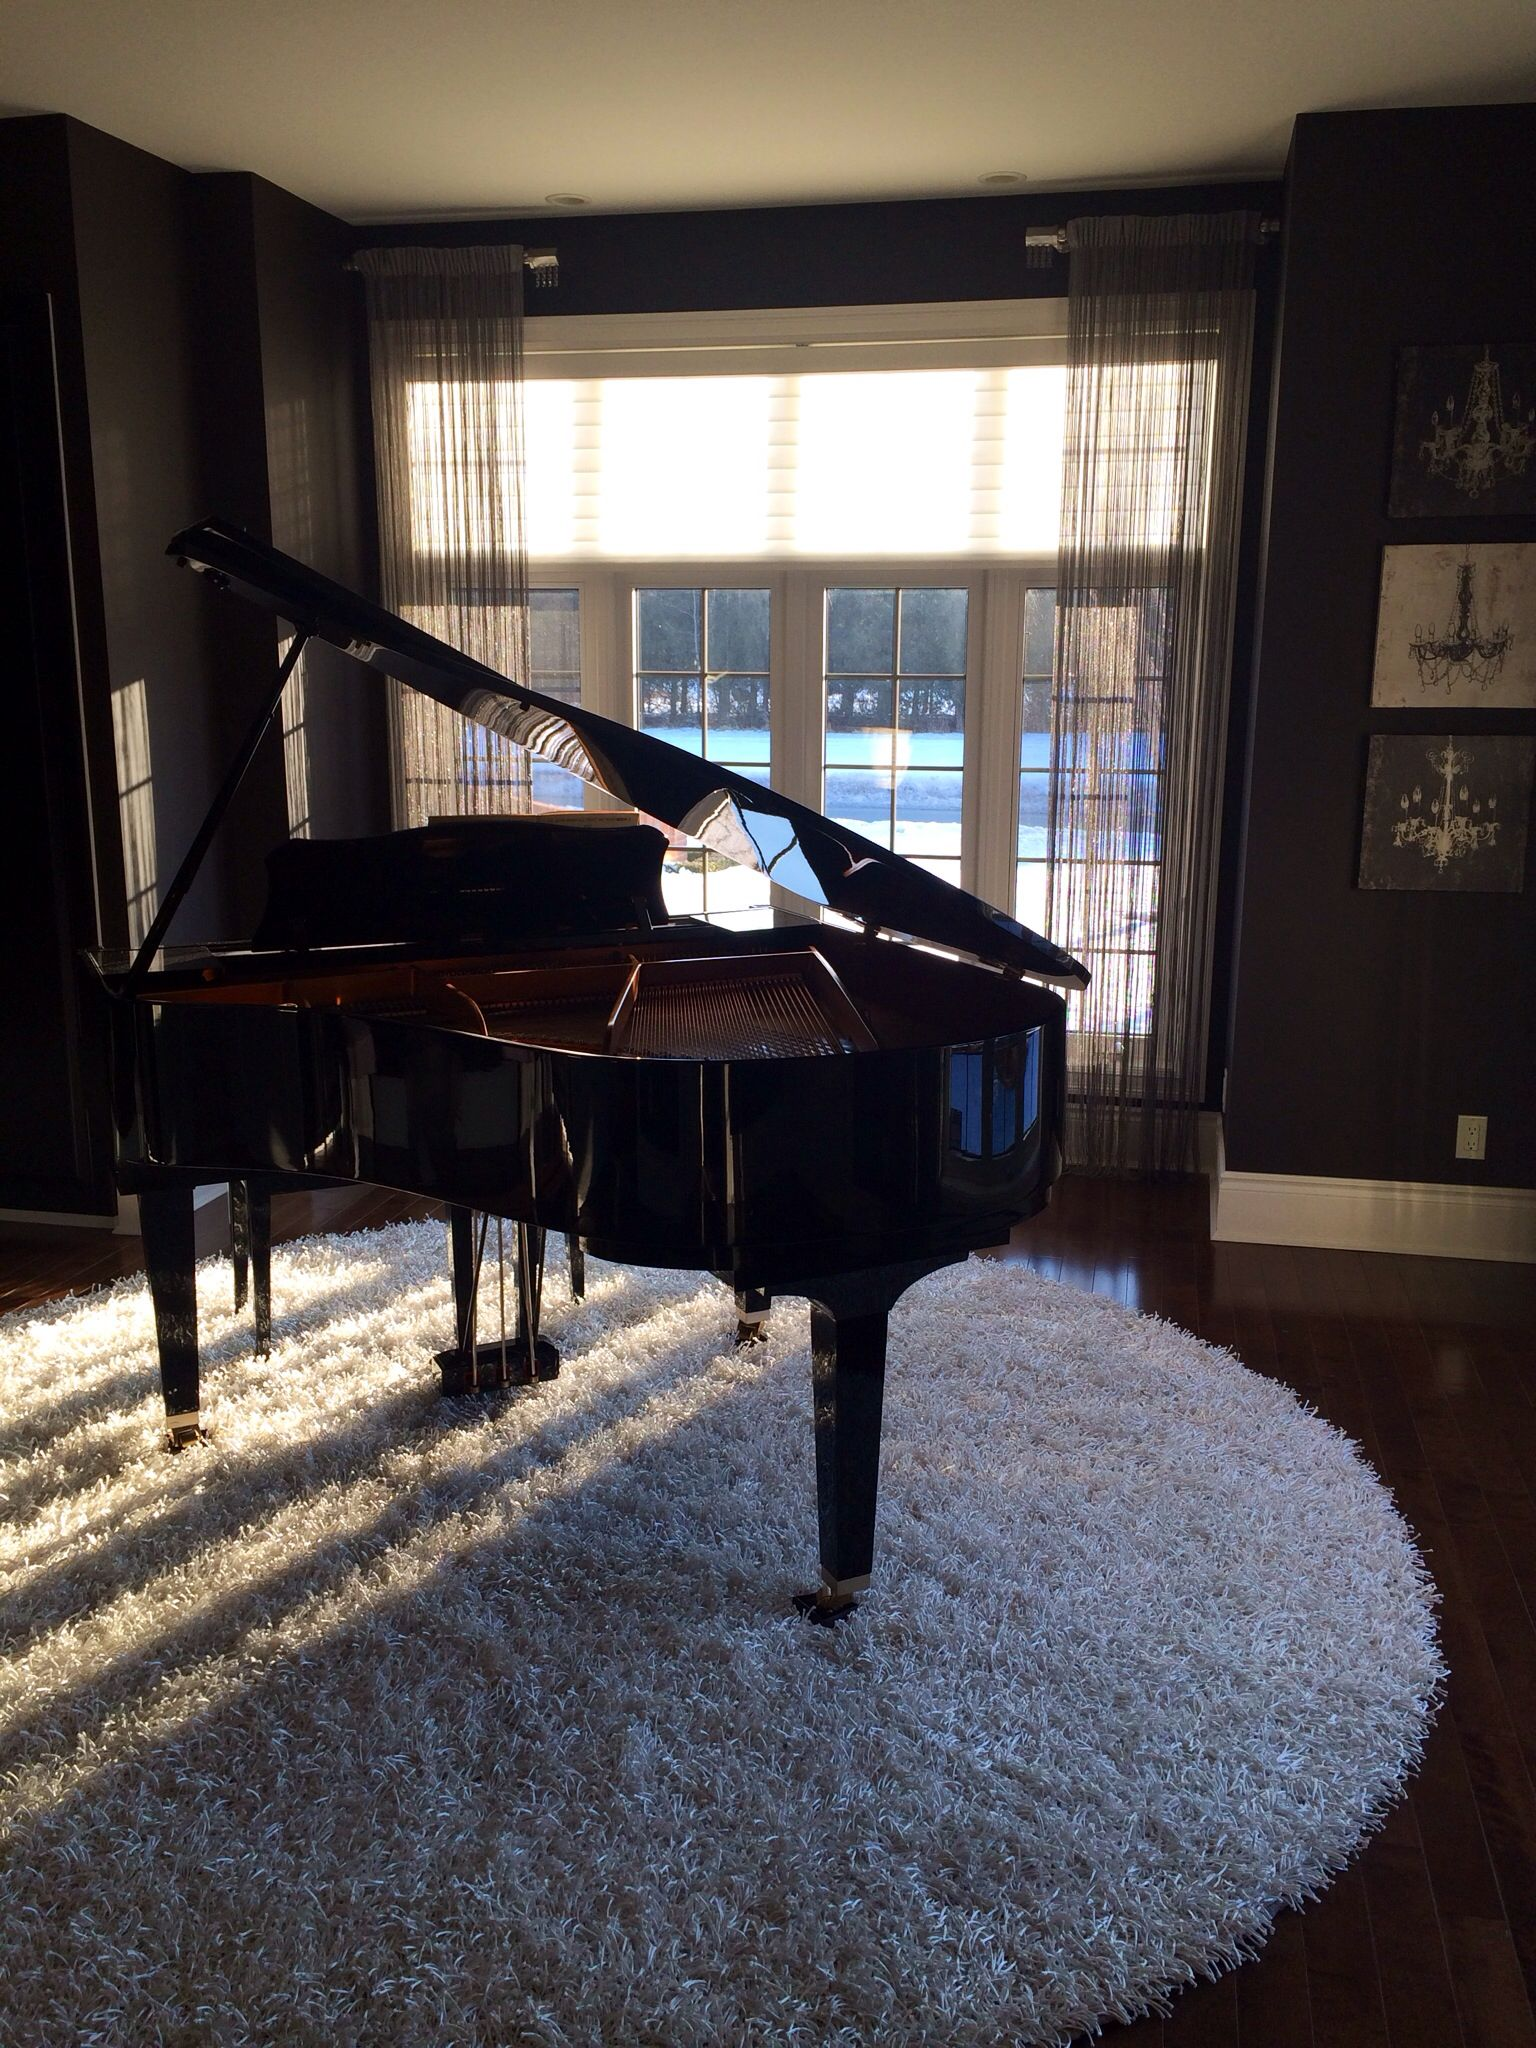 Rug Under Baby Grand Piano Area Rug Ideas